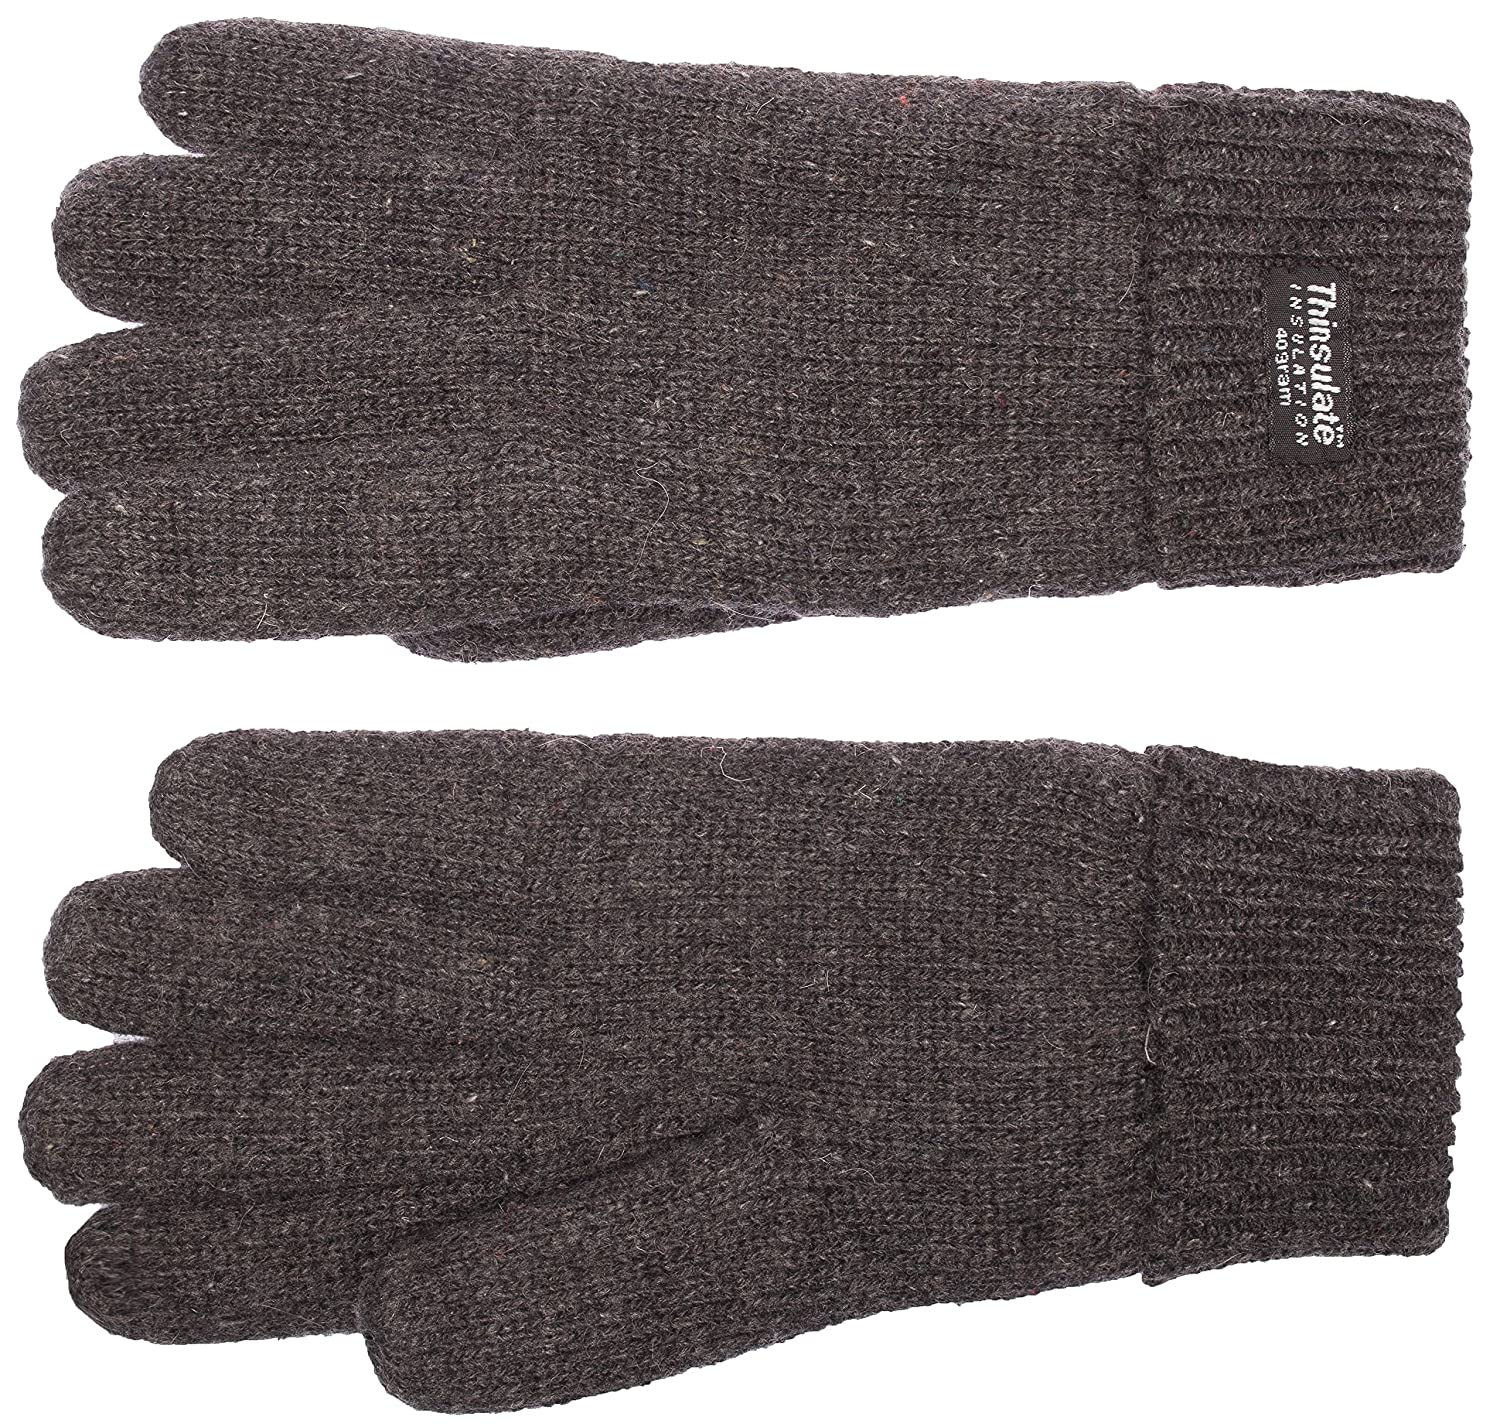 navy L warm 100/% wool EEM Mens knitted glove LASSE with Thinsulate thermal lining